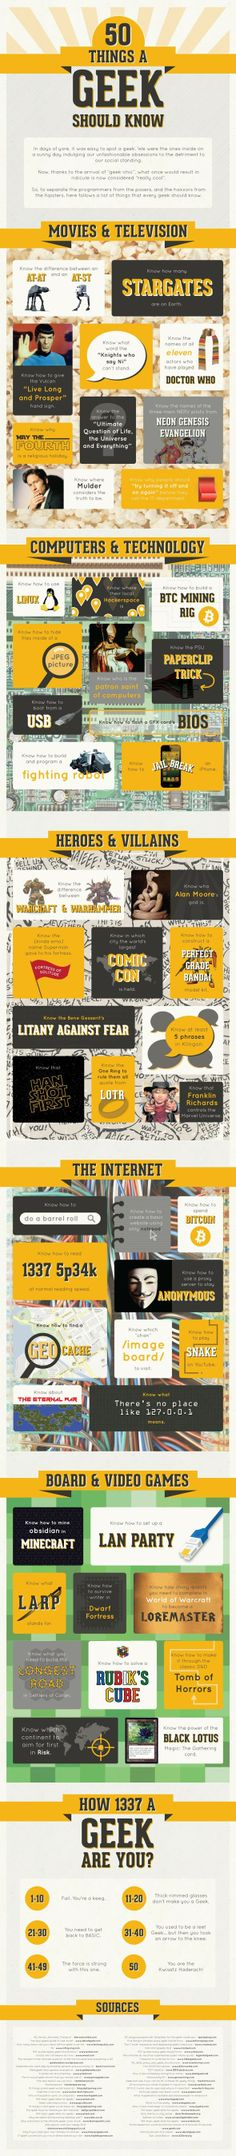 50 Things Every Geek Should Know